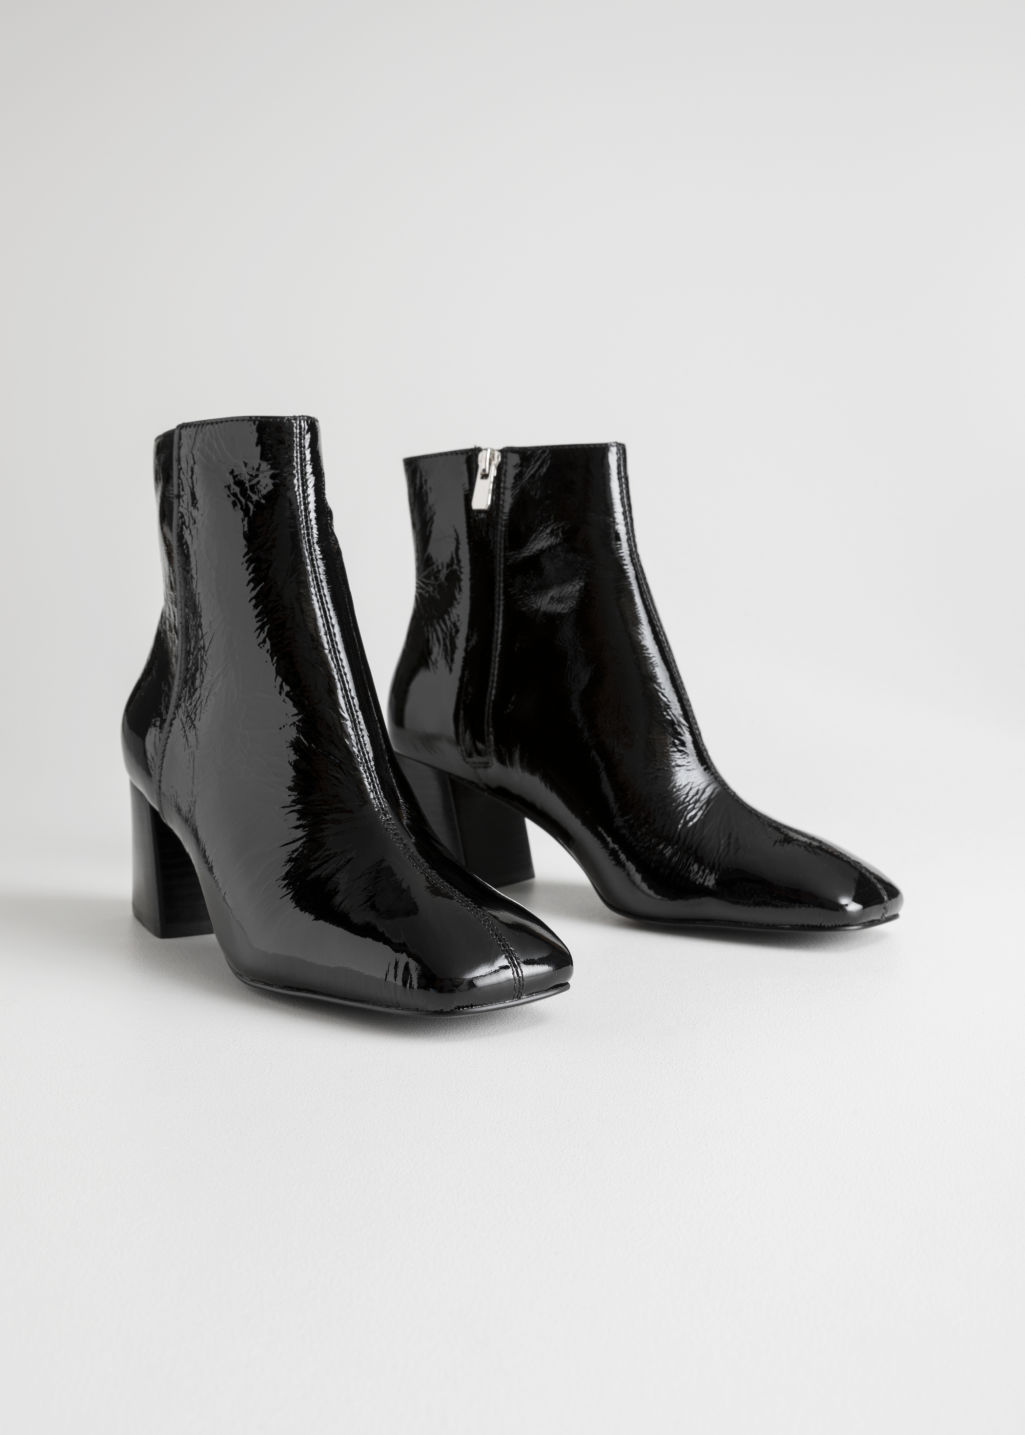 Patent Square Toe Ankle Boots